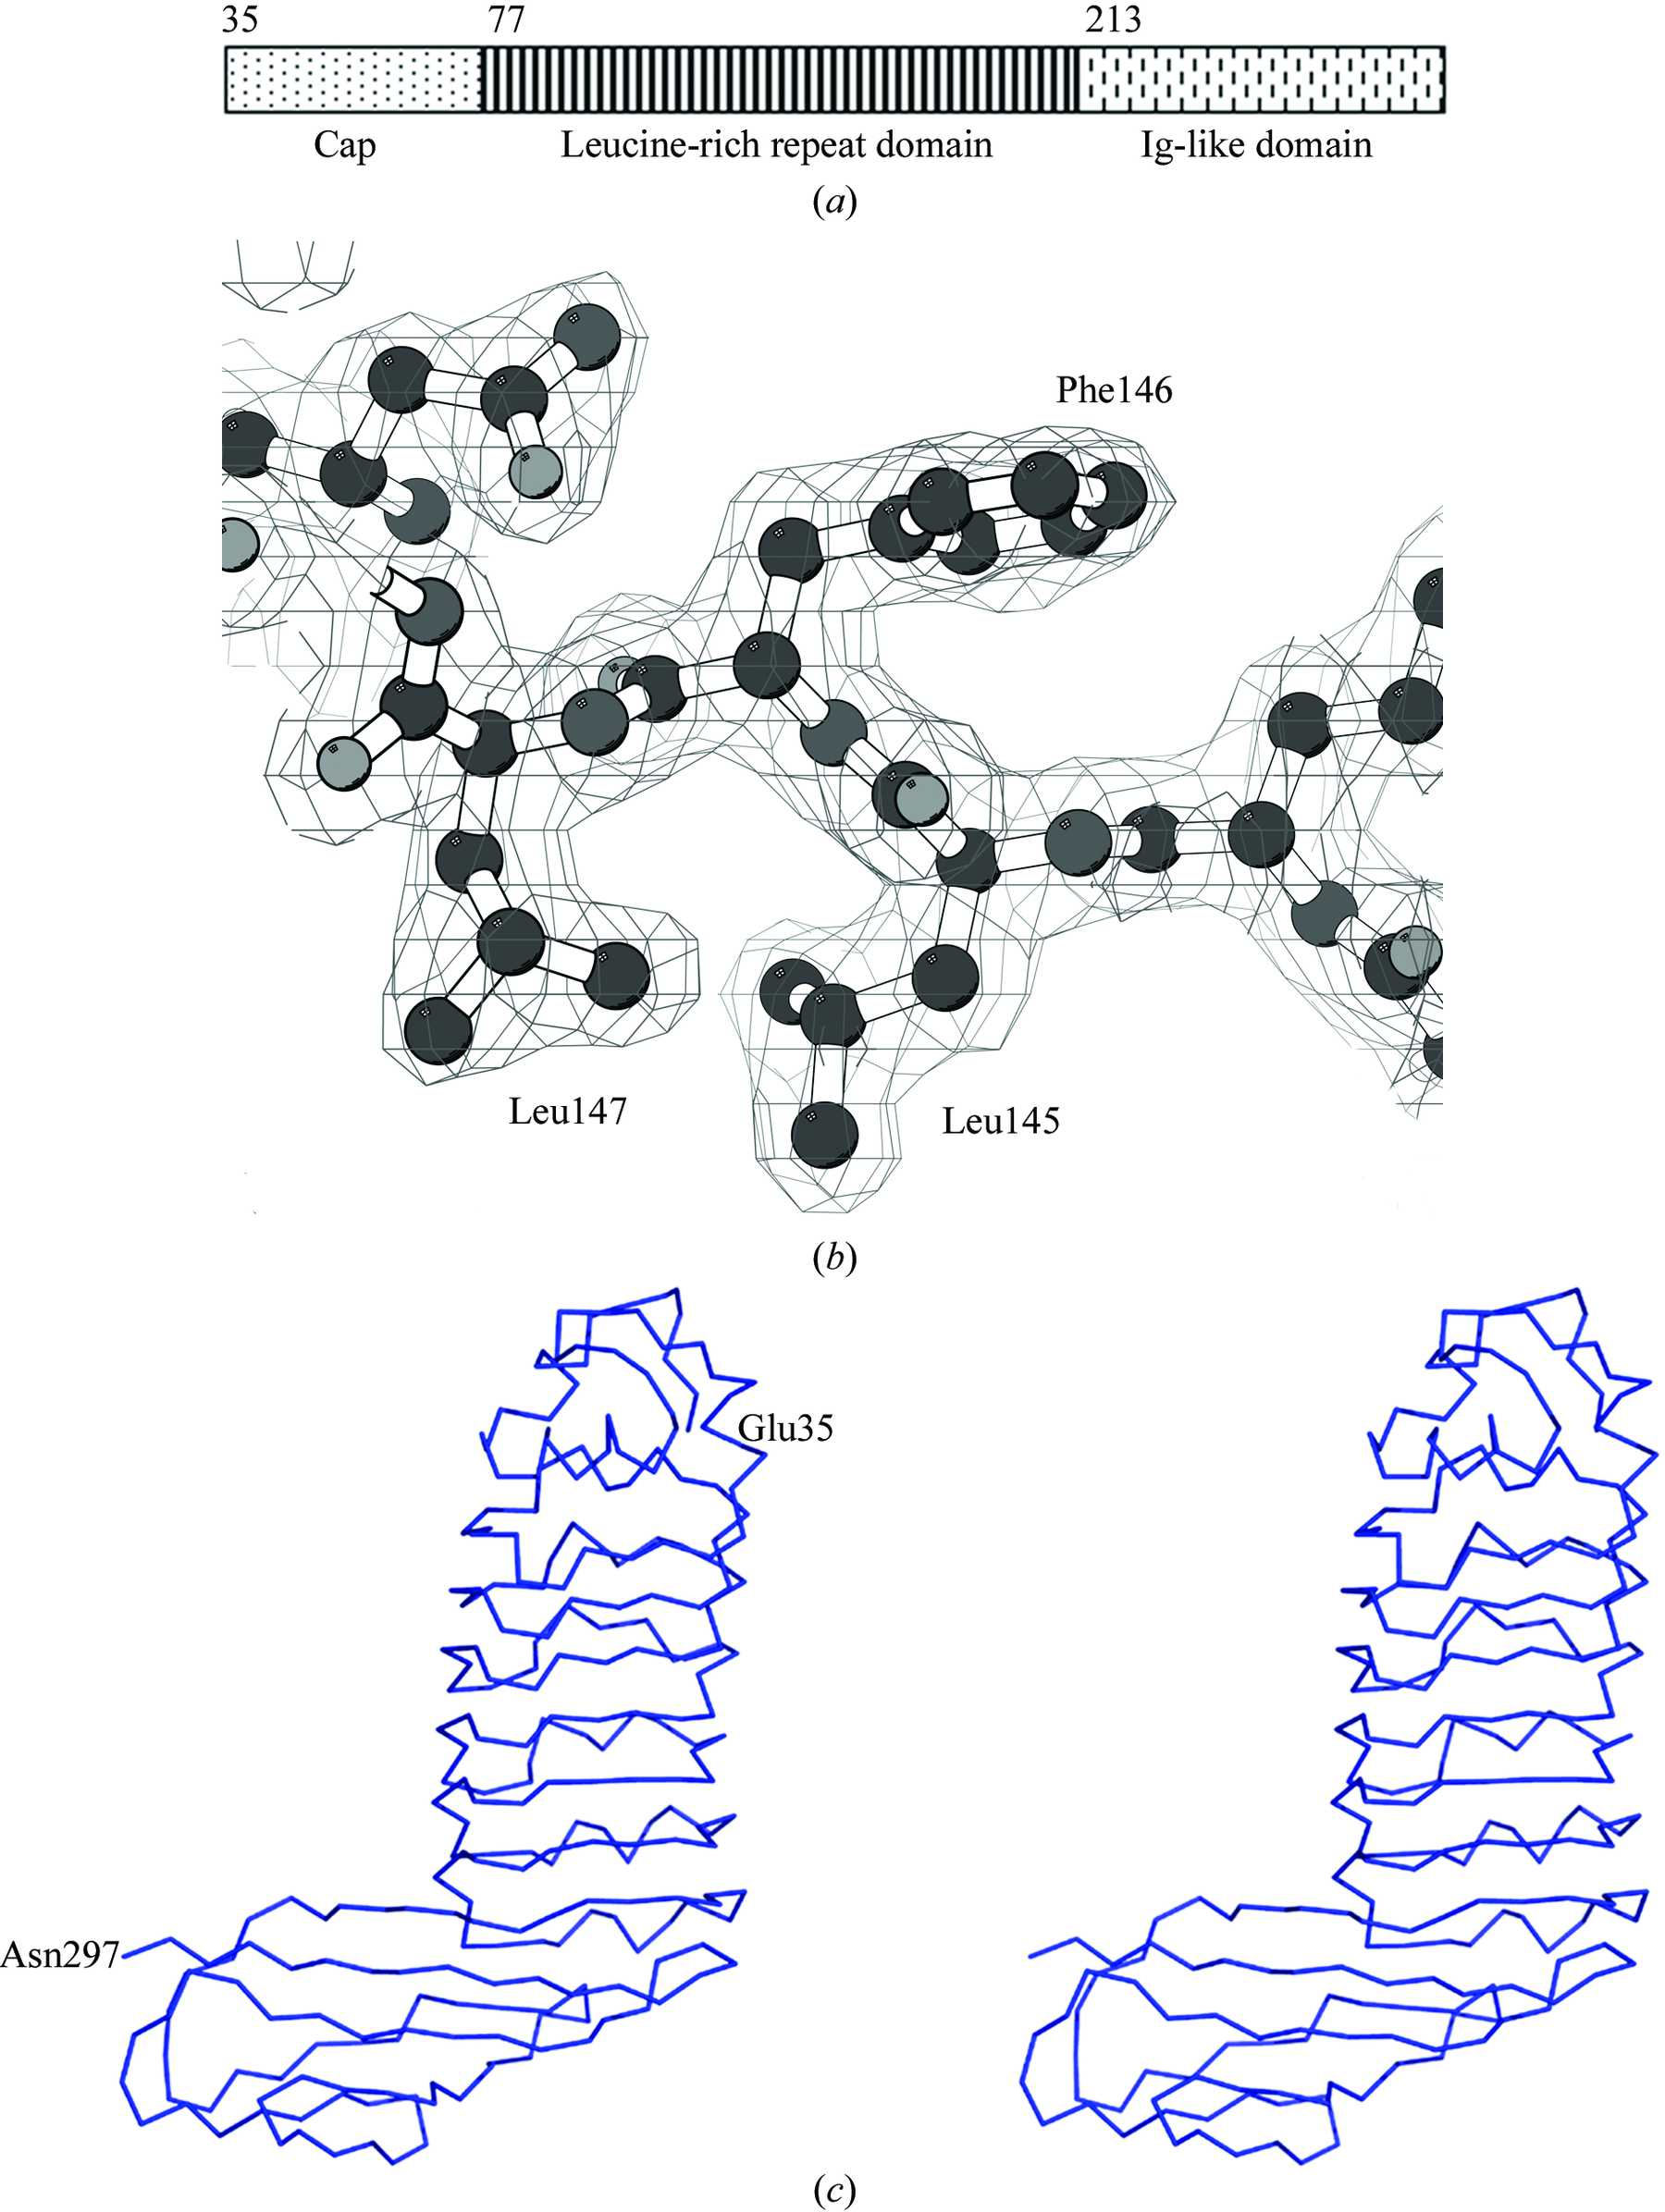 Iucr Structure Of Internalin C From Span Class It I Listeria Monocytogenes